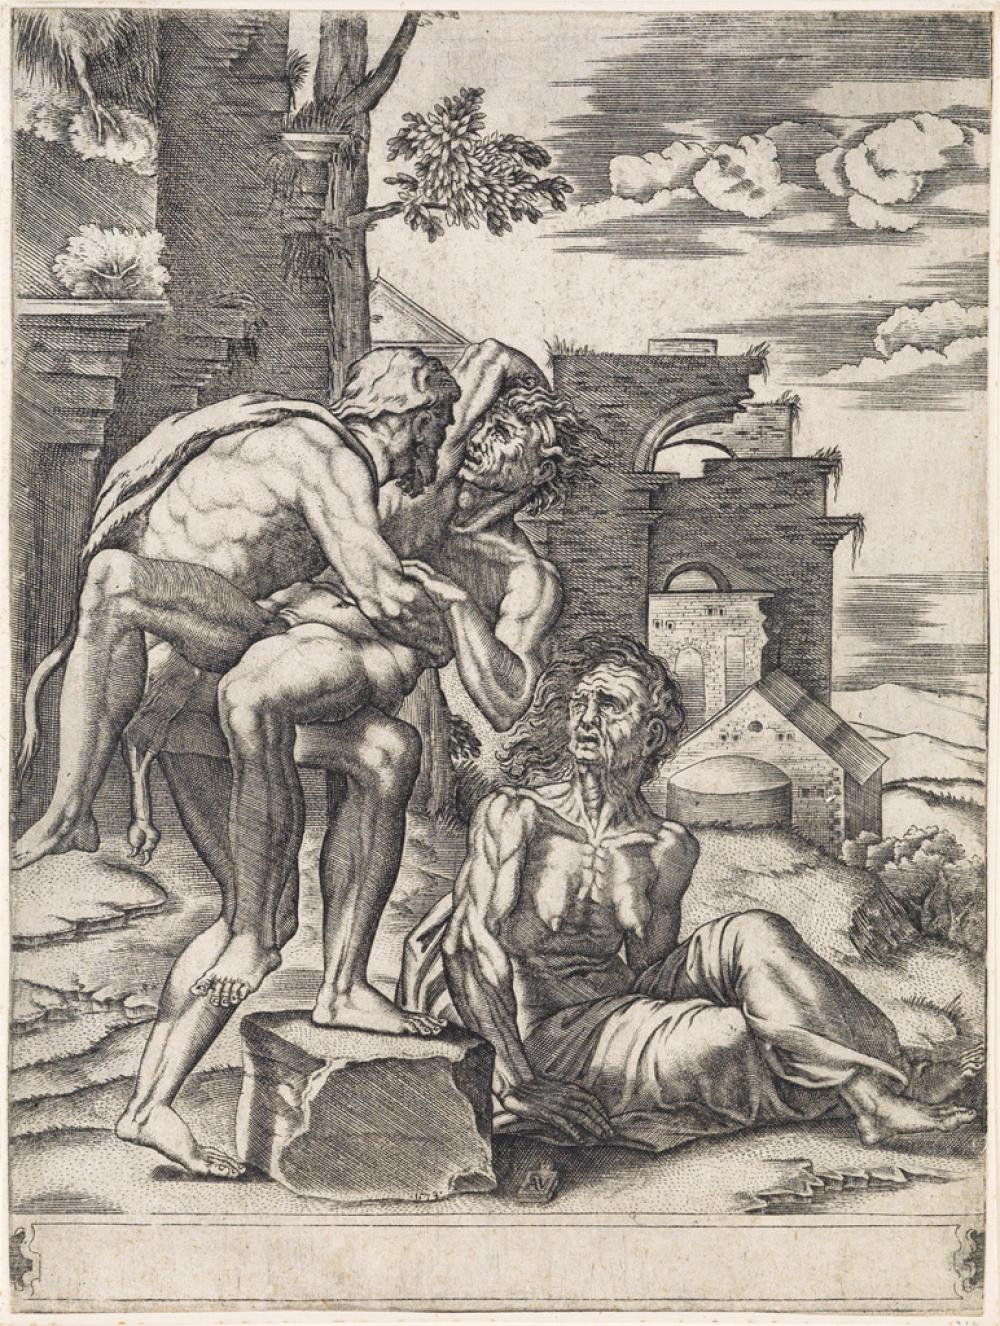 AGOSTINO VENEZIANO (after Raphael) Hercules Wrestling Antaeus in the Presence of an Old Woman, likely Earth, Antaeus' Mother